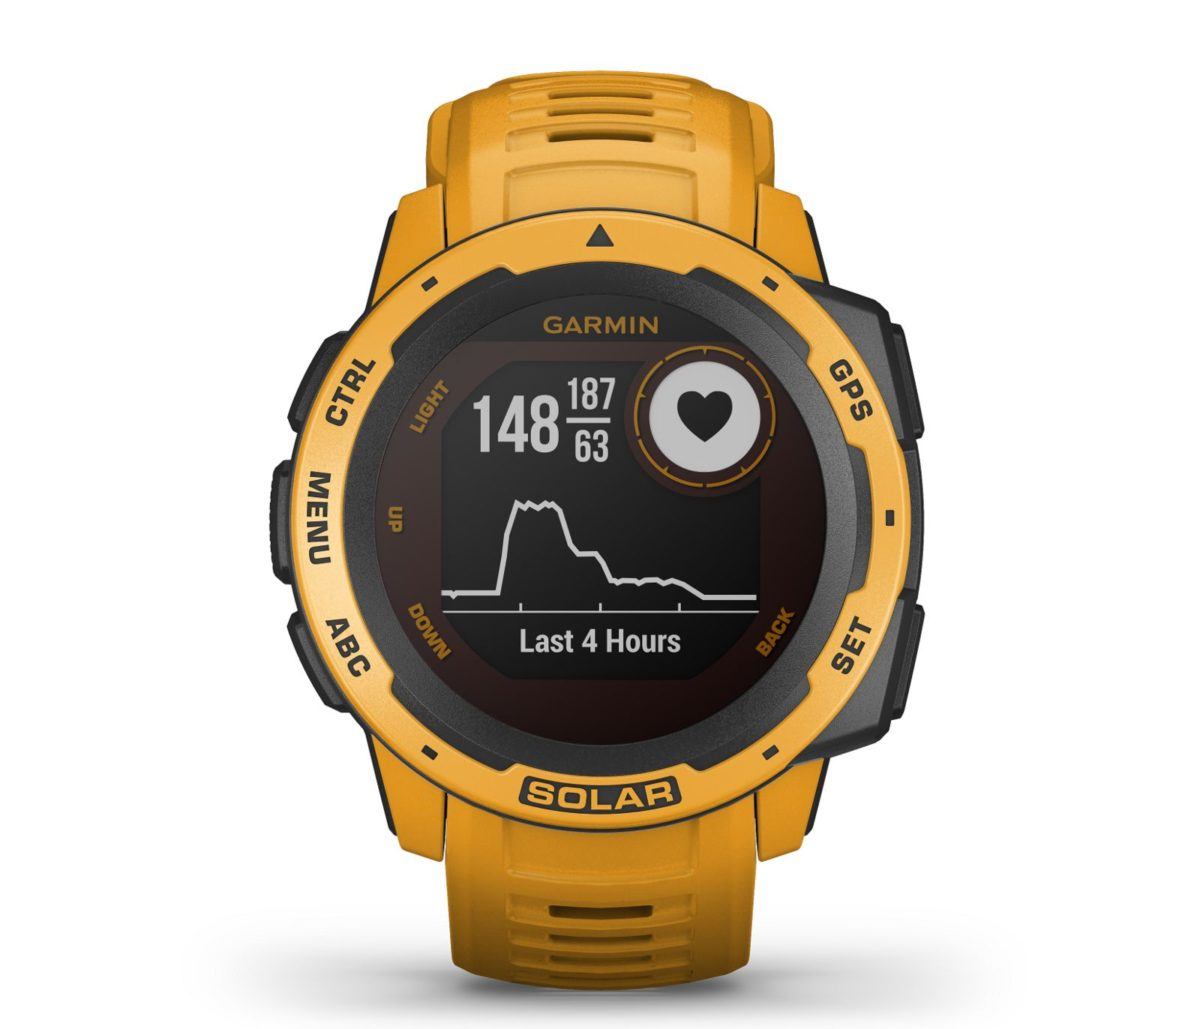 Garmin watch (1)